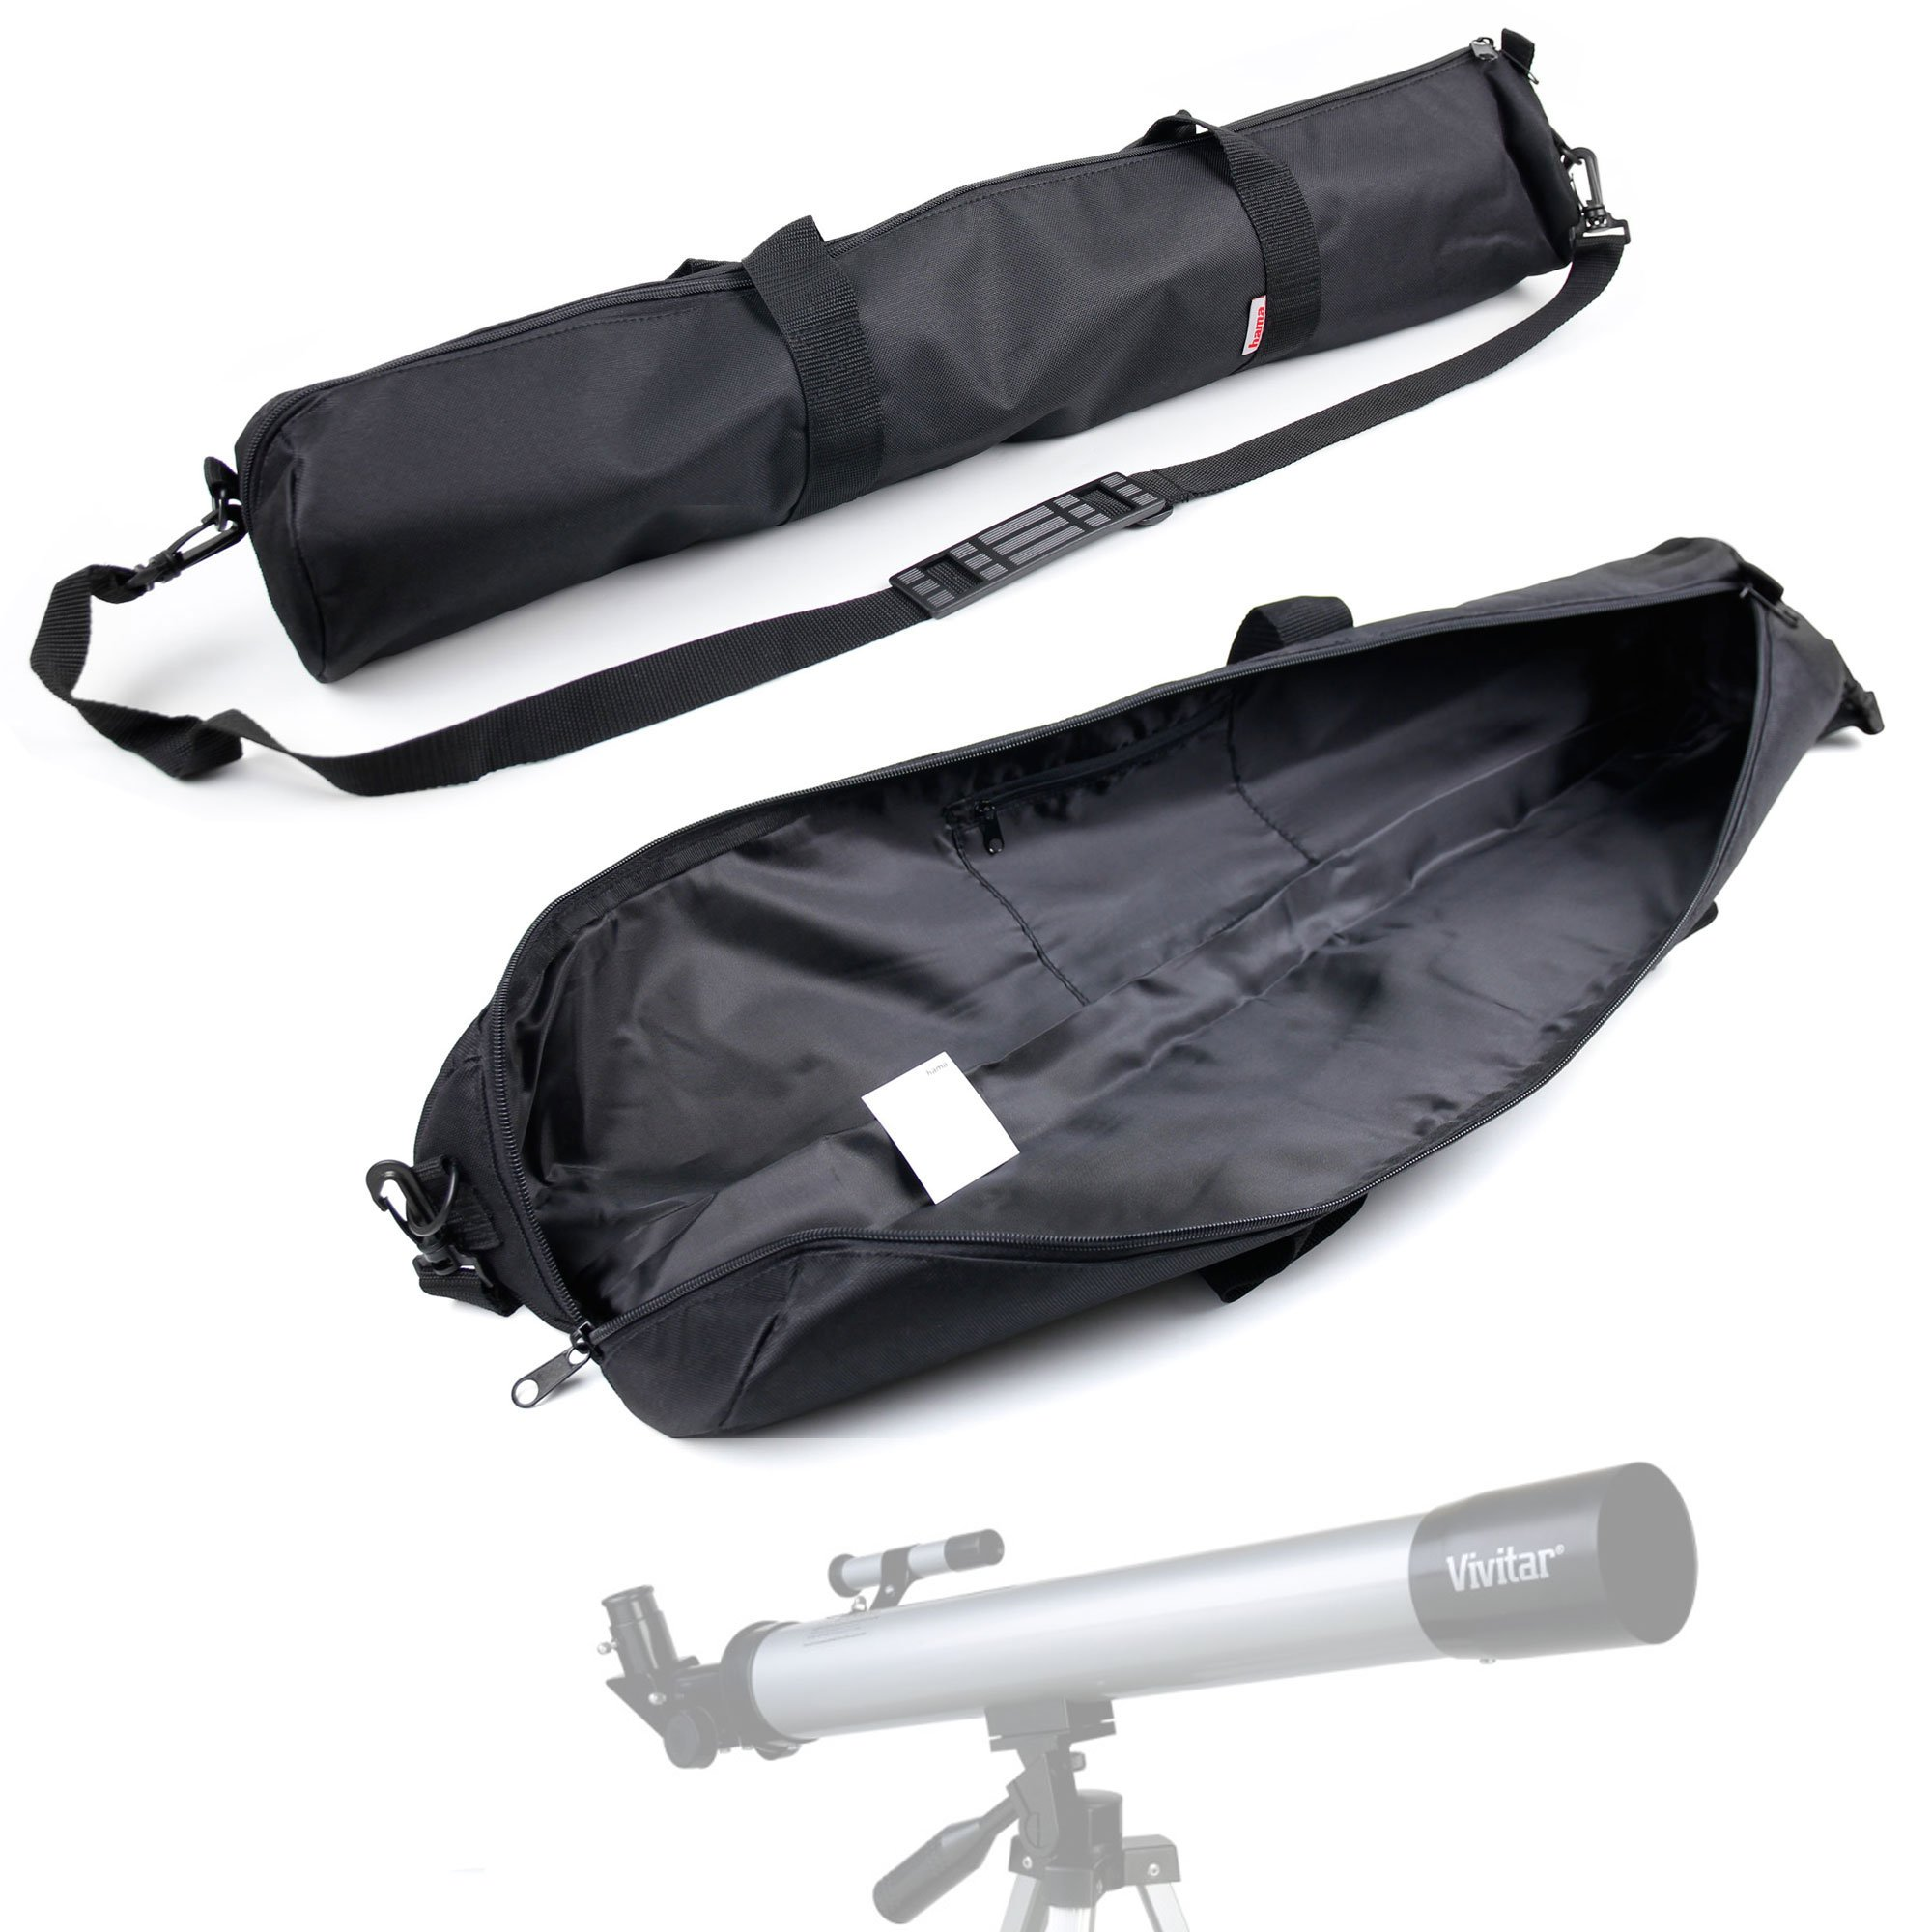 DURAGADGET Premium Quality Water-Resistant Telescope Carry Bag/Cover for Vivitar TEL50600 60X/120X Telescope Refractor - with Removable & Adjustable Shoulder Strap and Separate Carry Handles by DURAGADGET